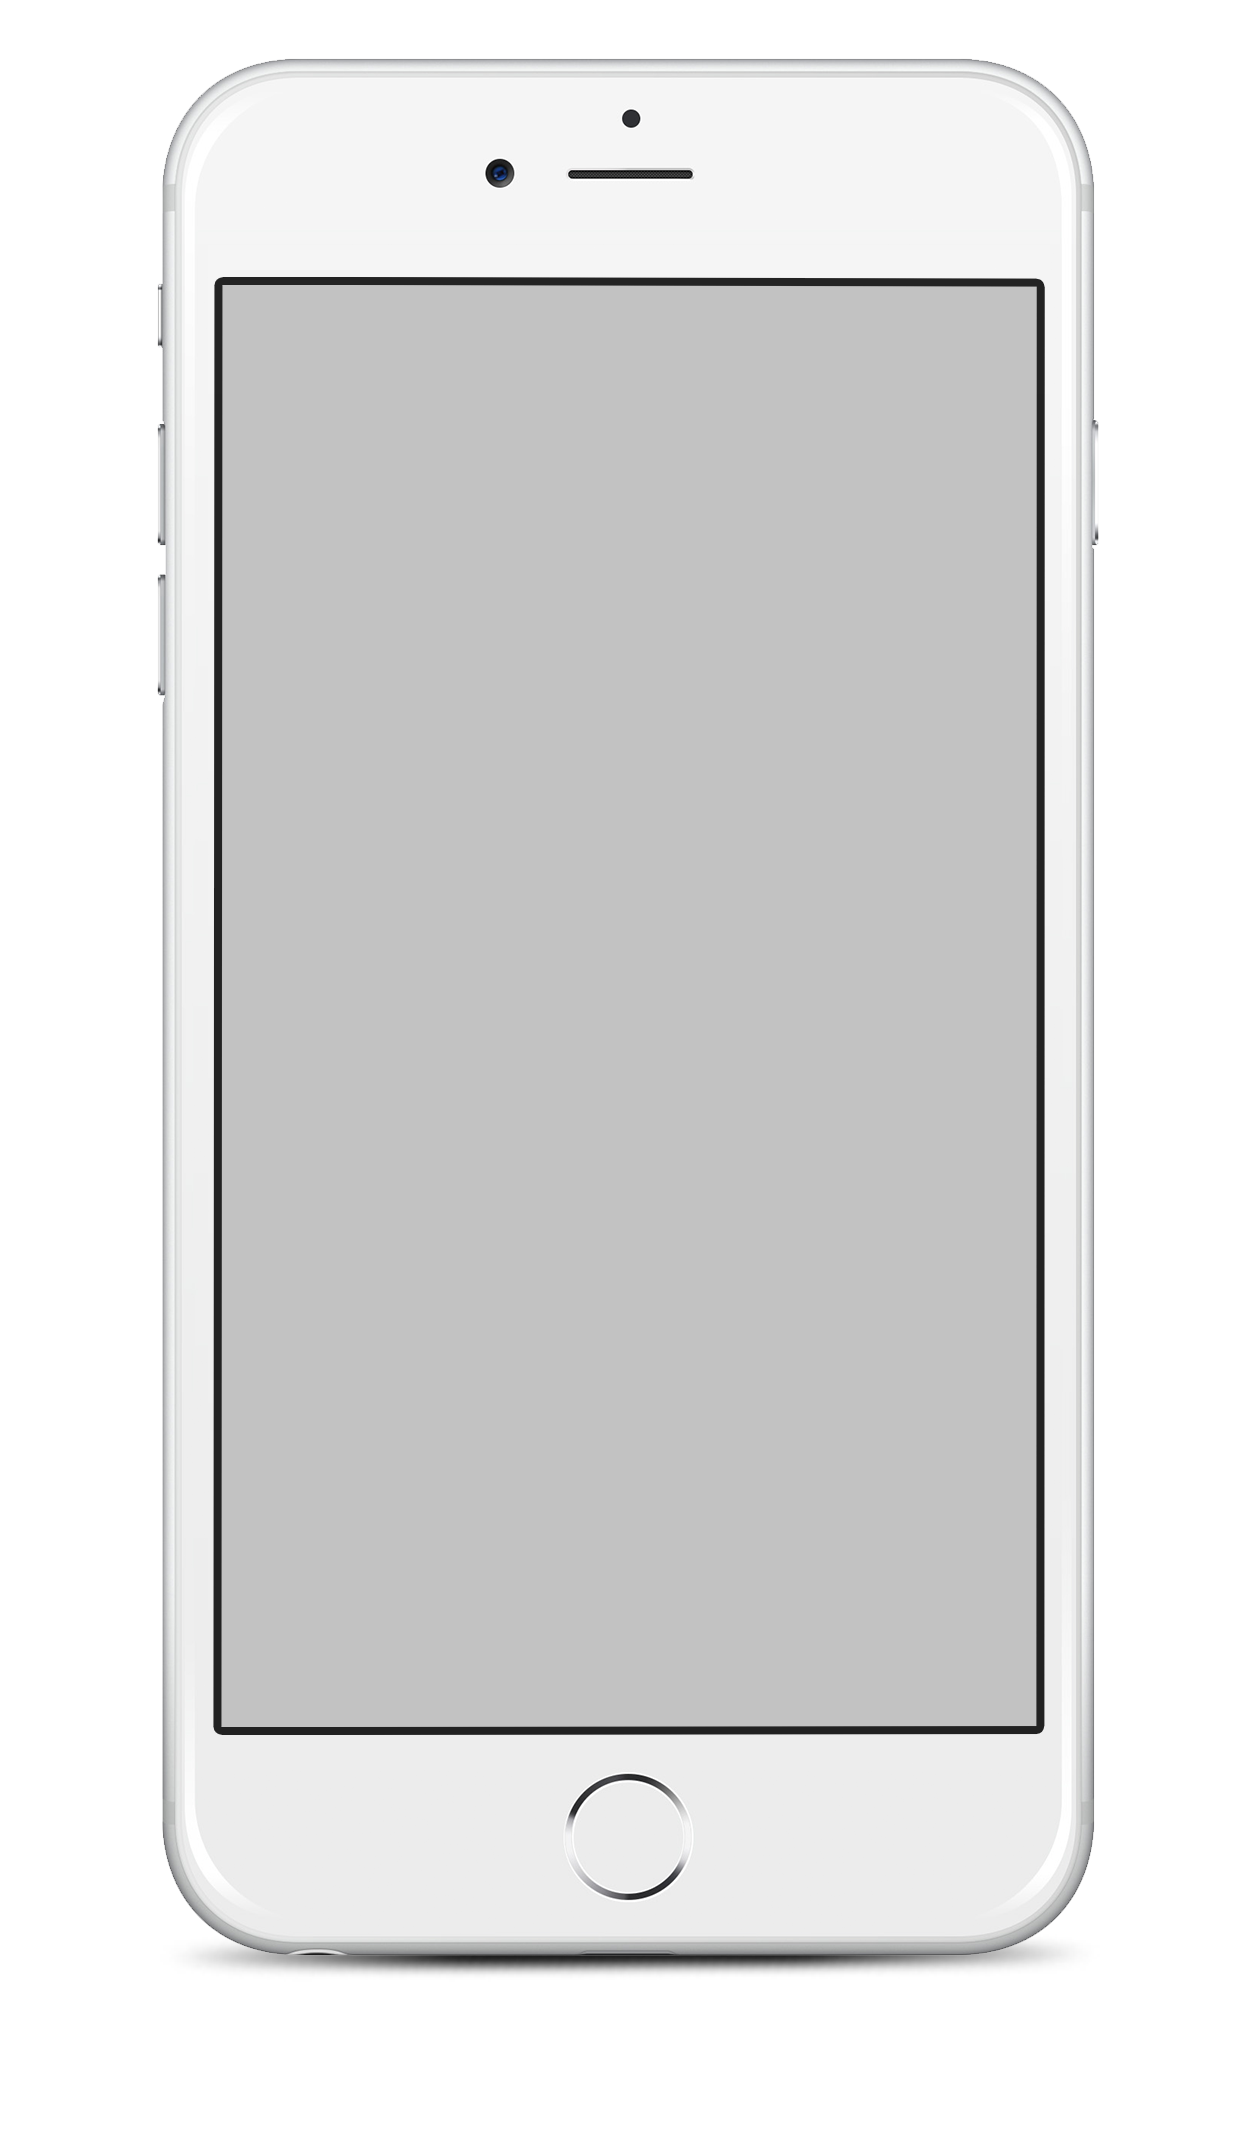 White Iphone Png (94+ images in Collection) Page 2.